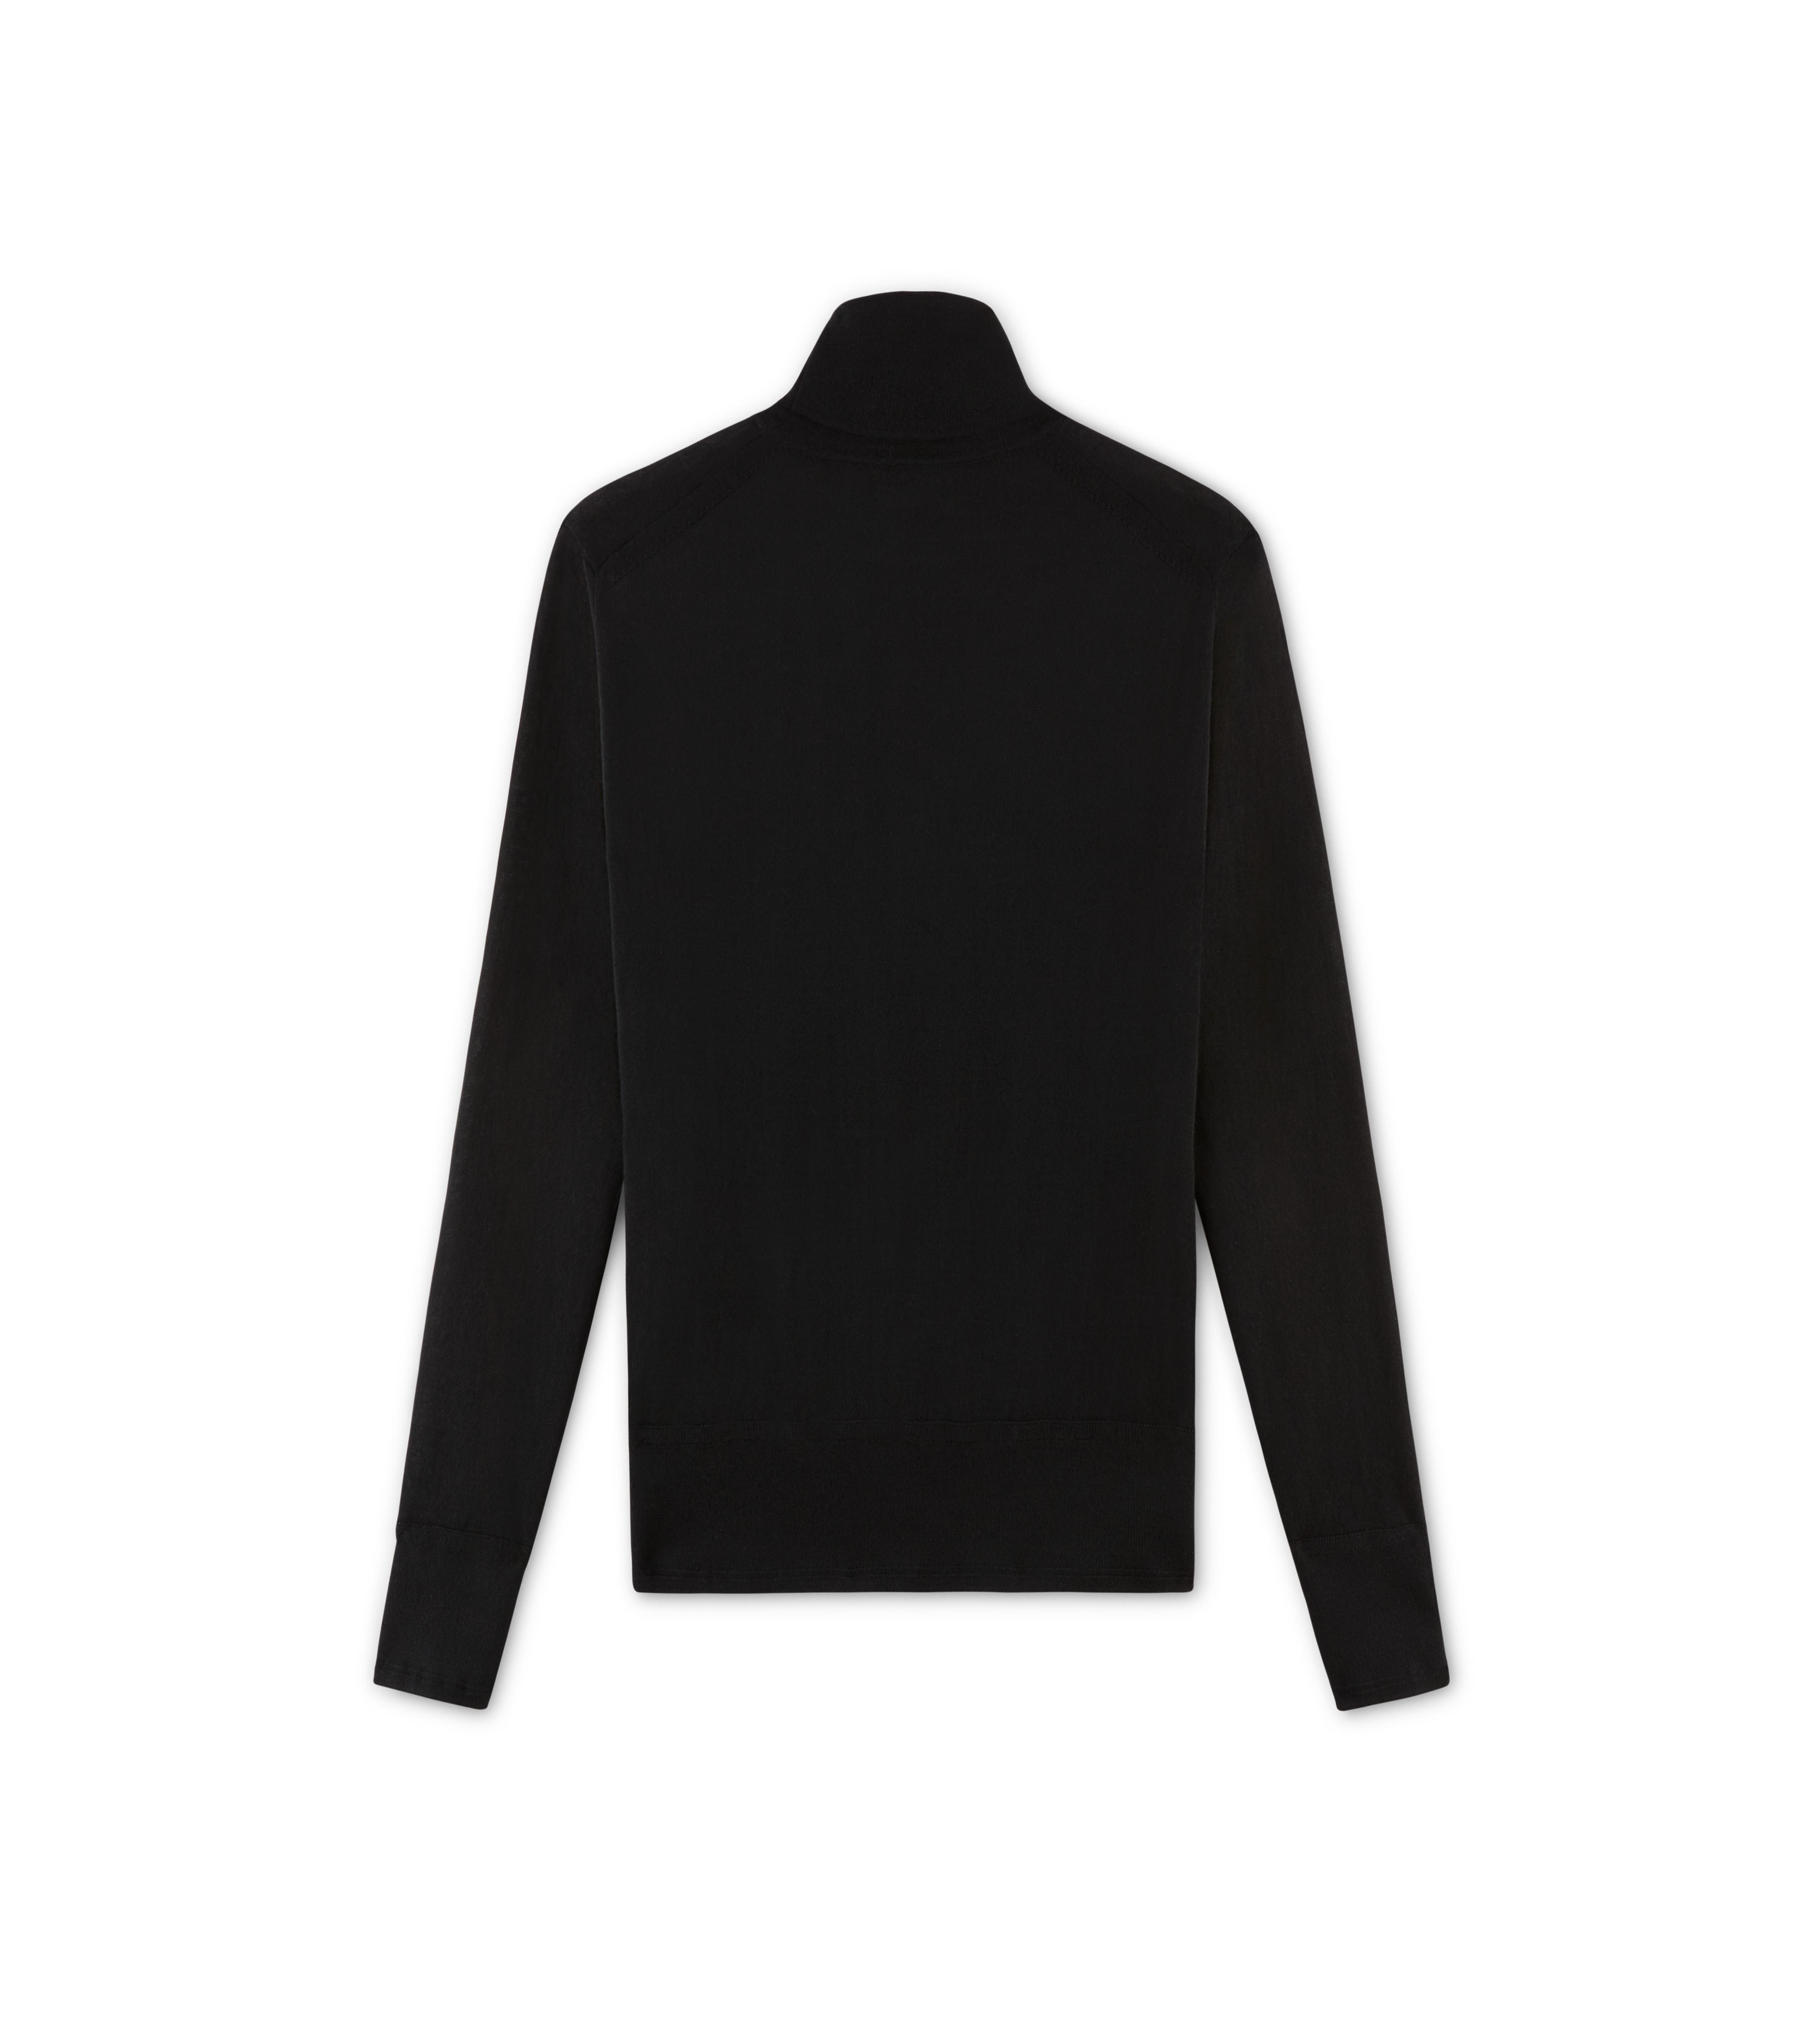 SUPERFINE CASHMERE TURTLENECK B thumbnail